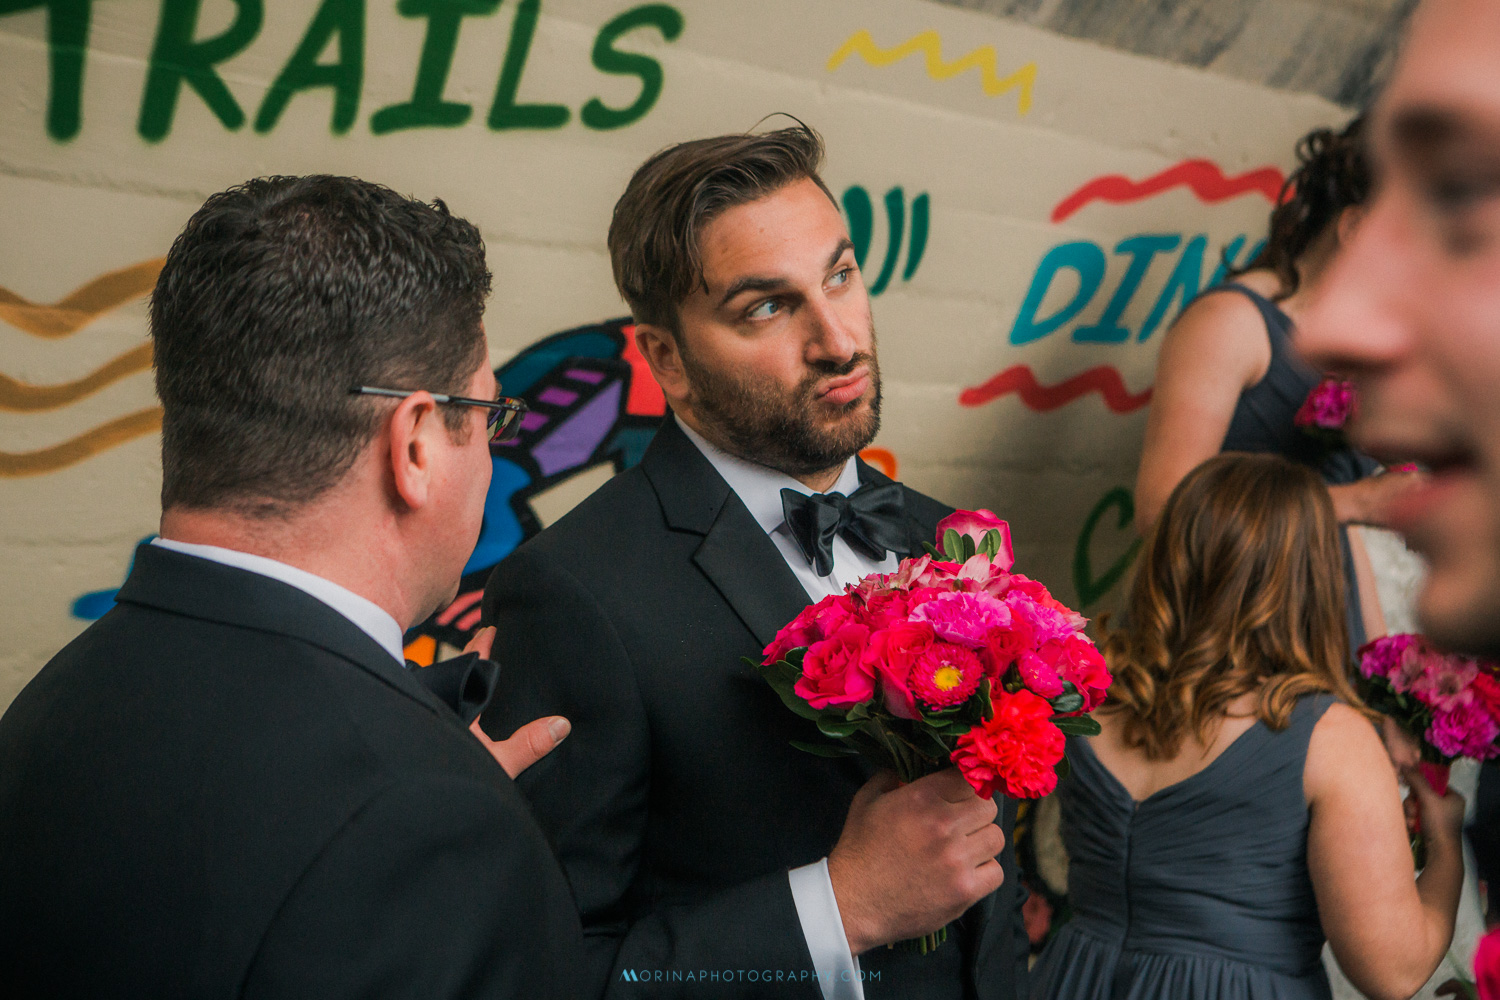 Jill & Rhett Wedding at Artesano Iron Works, Manayunk Philadelphia42.jpg